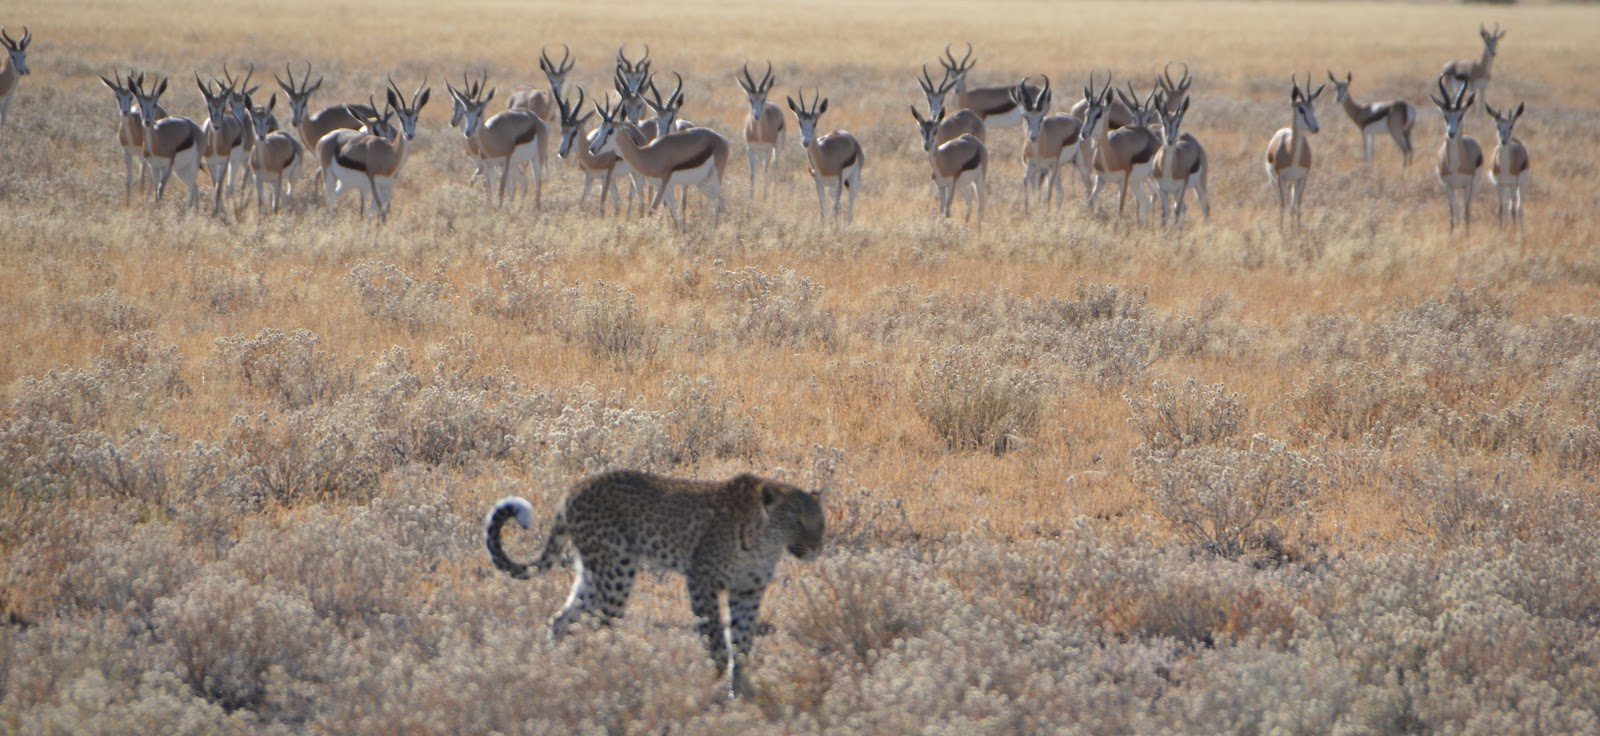 Displaying 16 gt images for leopards hunting